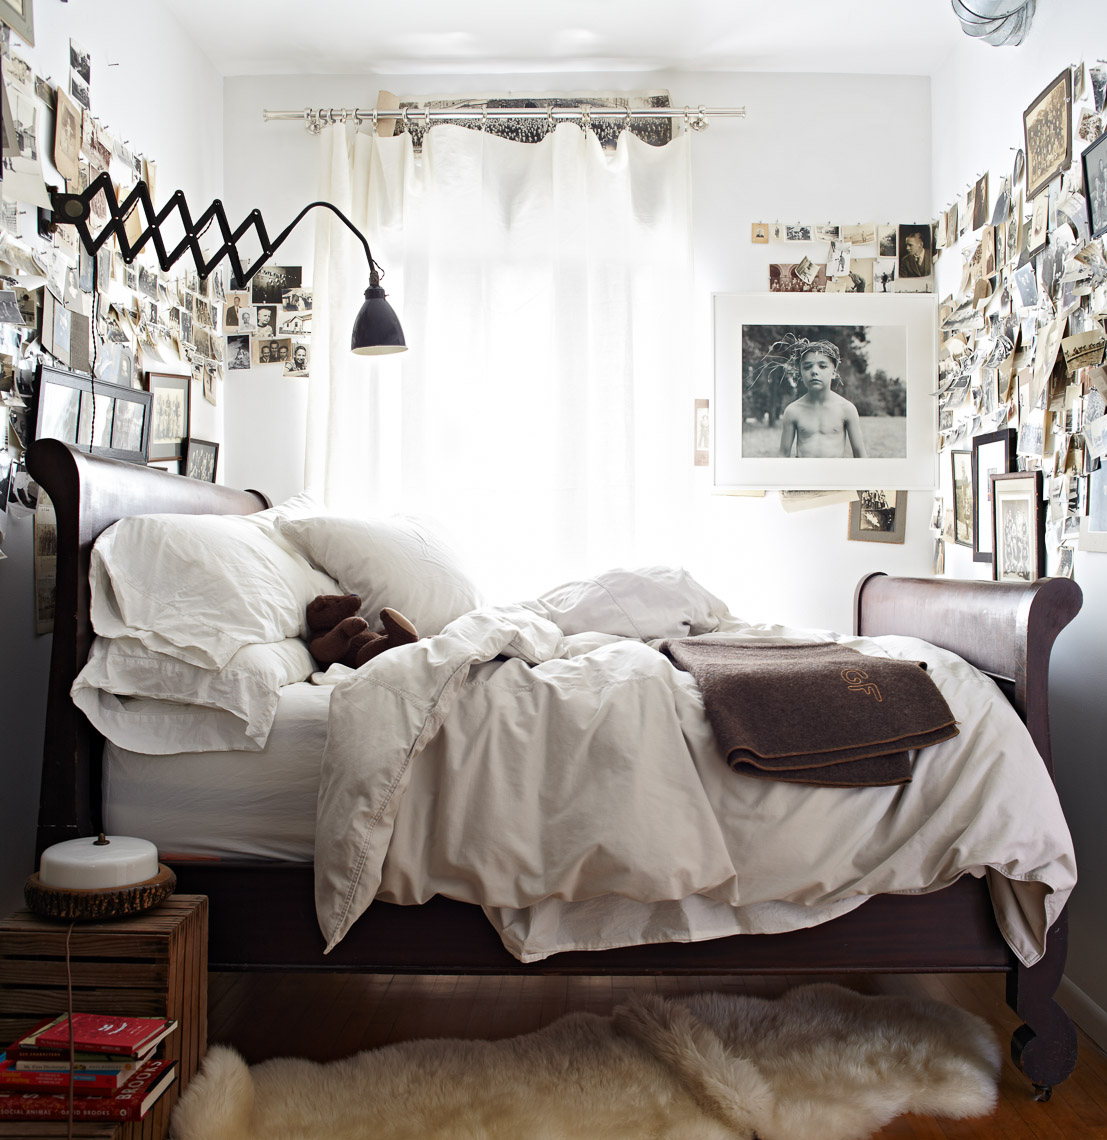 alec-hemer-photography-Jeffrey Moss_bedroom